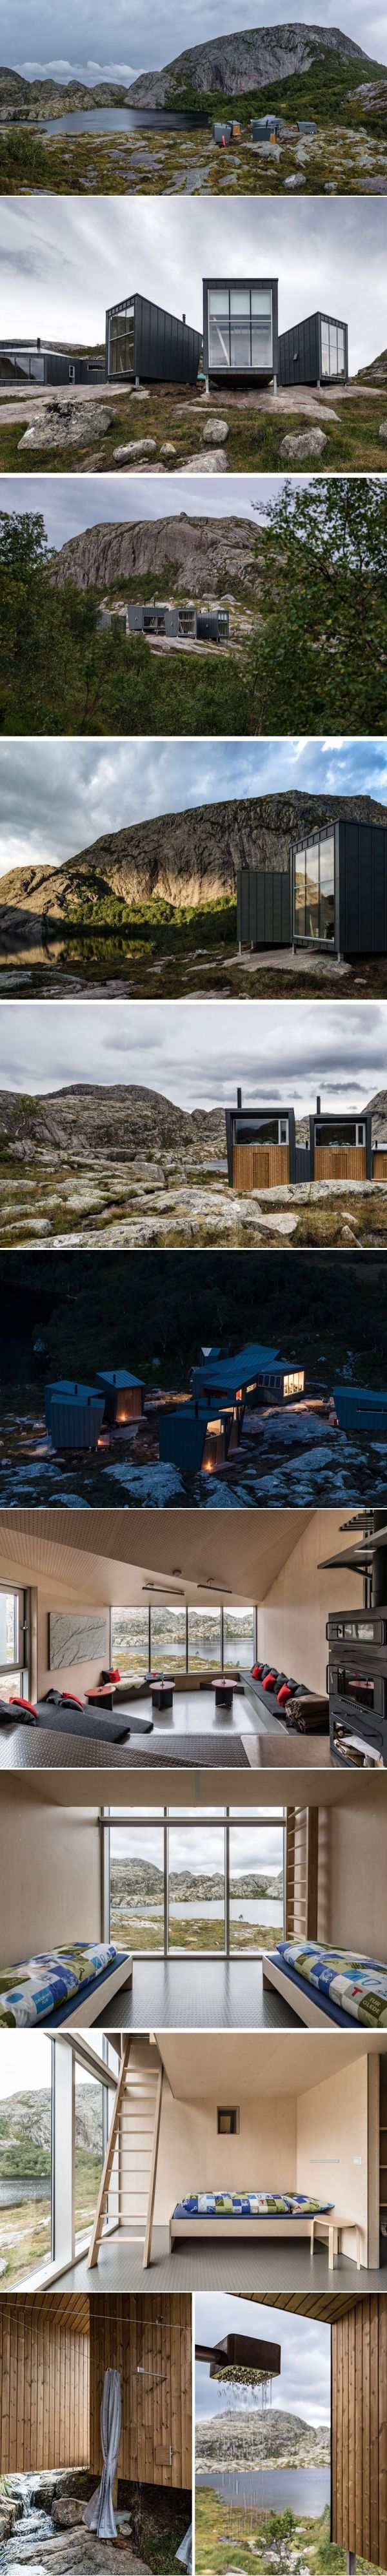 A Cluster Of Hiking Lodges Has Emerged In The Mountains Of Norway | CONTEMPORIST